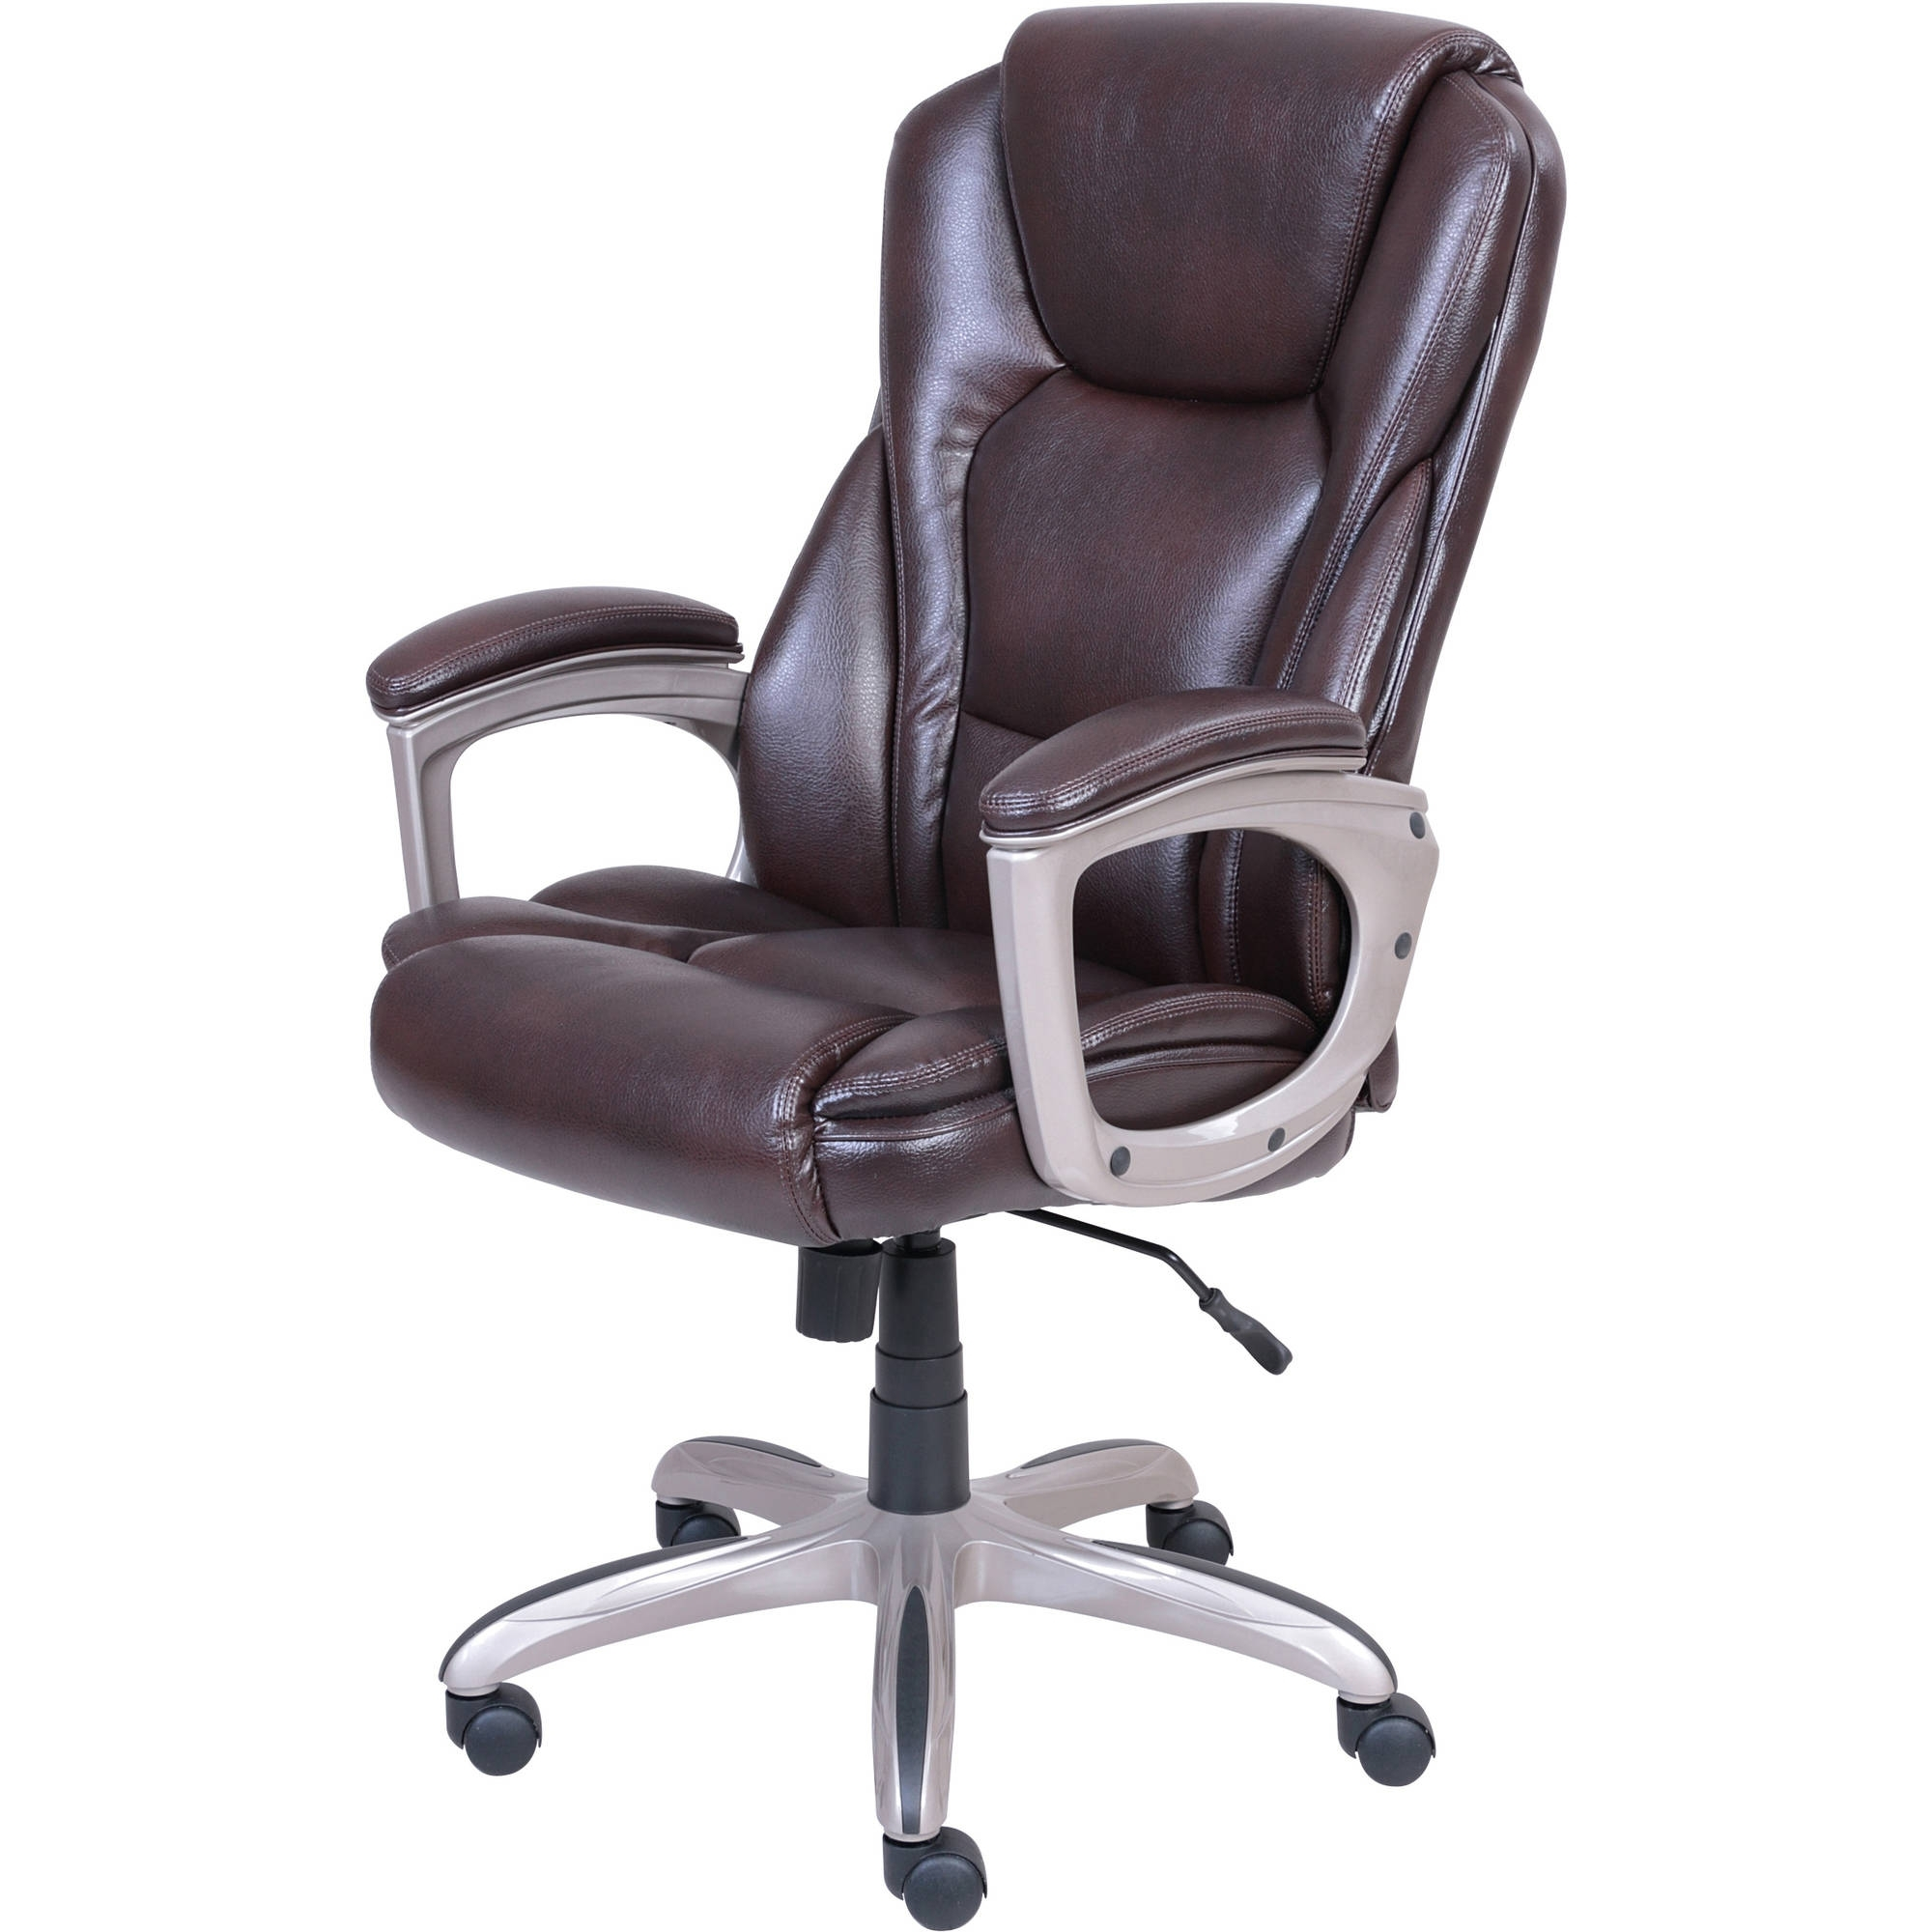 xl desk chair cool teen chairs top 20 of executive office throughout famous serta big tall commercial with memory foam